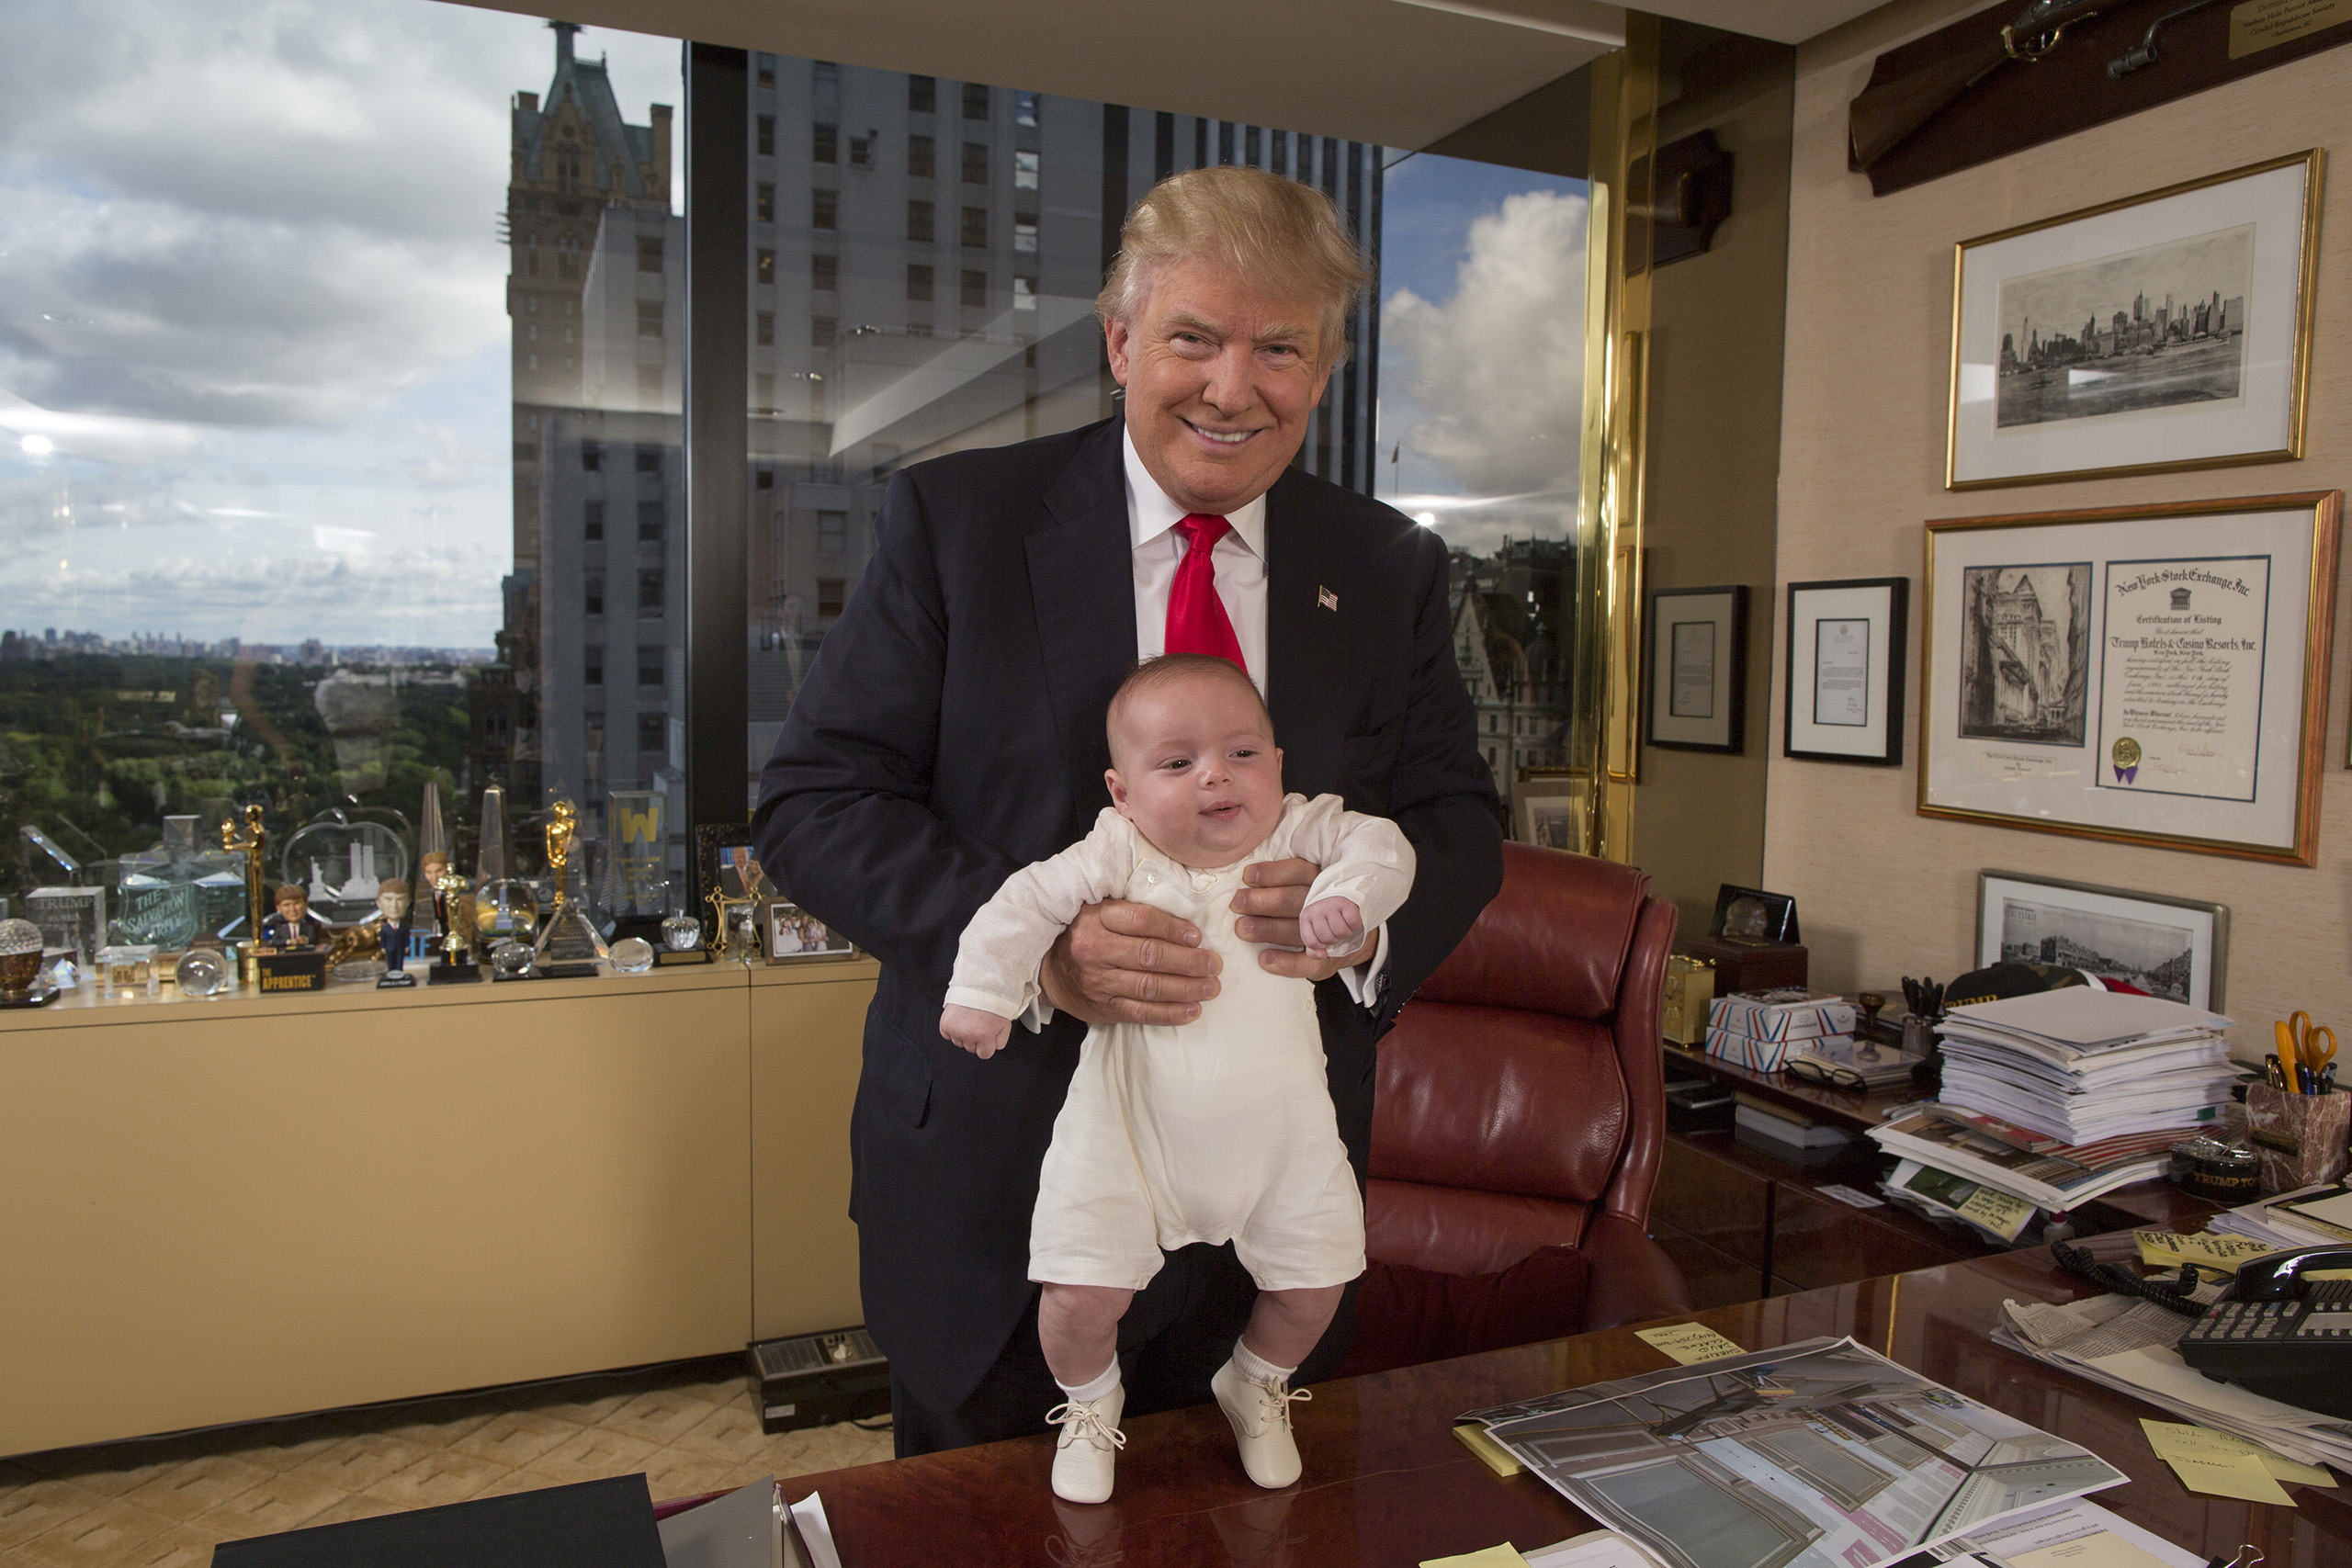 Republican presidential candidate Donald Trump with his grandson Theodore James in Trump's office in New York City on July 11, 2016.